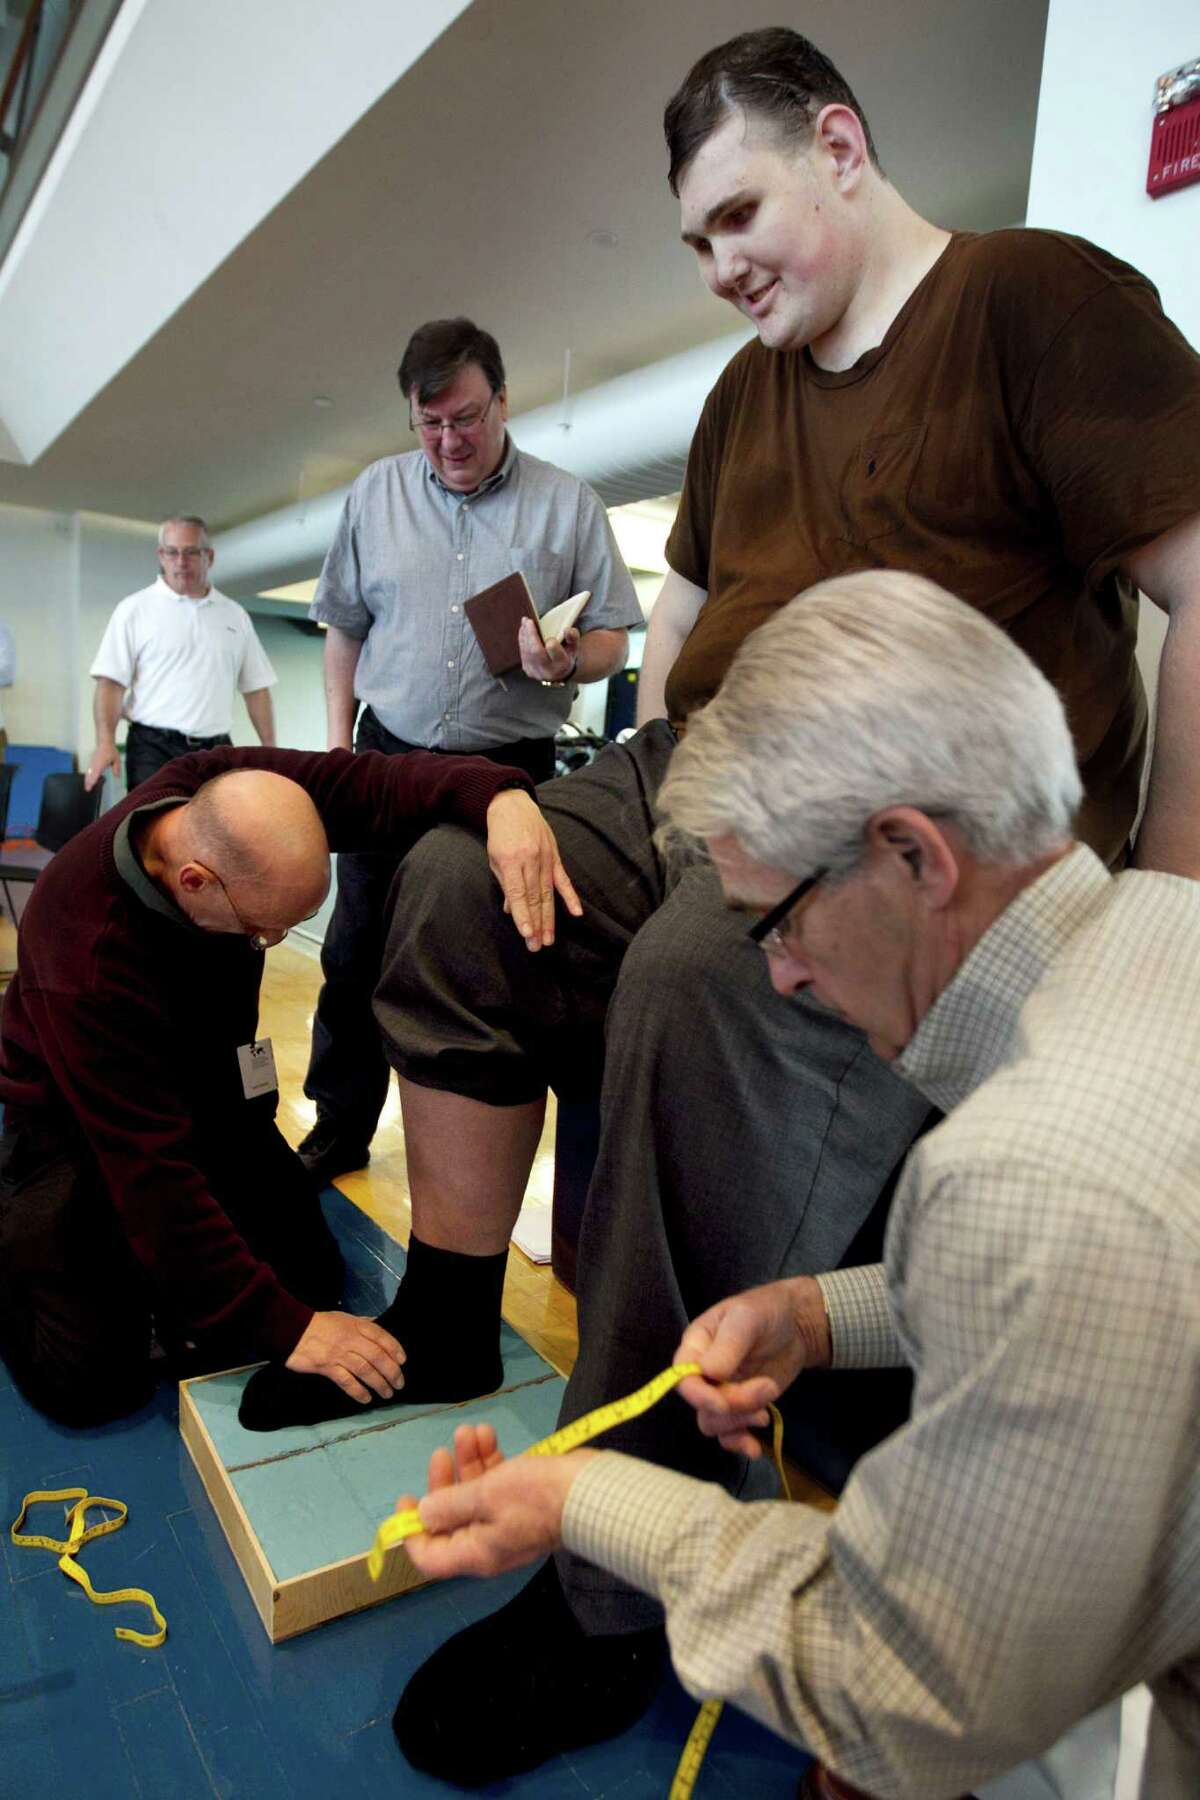 Igor Vovkovinskiy, of Minneapolis, currently the tallest man in the United States at seven feet eight inches, has an imprint taken of his foot by technicians as part of a shoe fitting at Reebok headquarters, in Canton, Mass., Thursday, May 3, 2012. Vovkovinskiy, who has a shoe size between 22 and 26, says he's had 16 surgeries in six years to fix problems created by shoes that didn't fit. Reebok is providing the shoes at no charge. (AP Photo/Steven Senne)